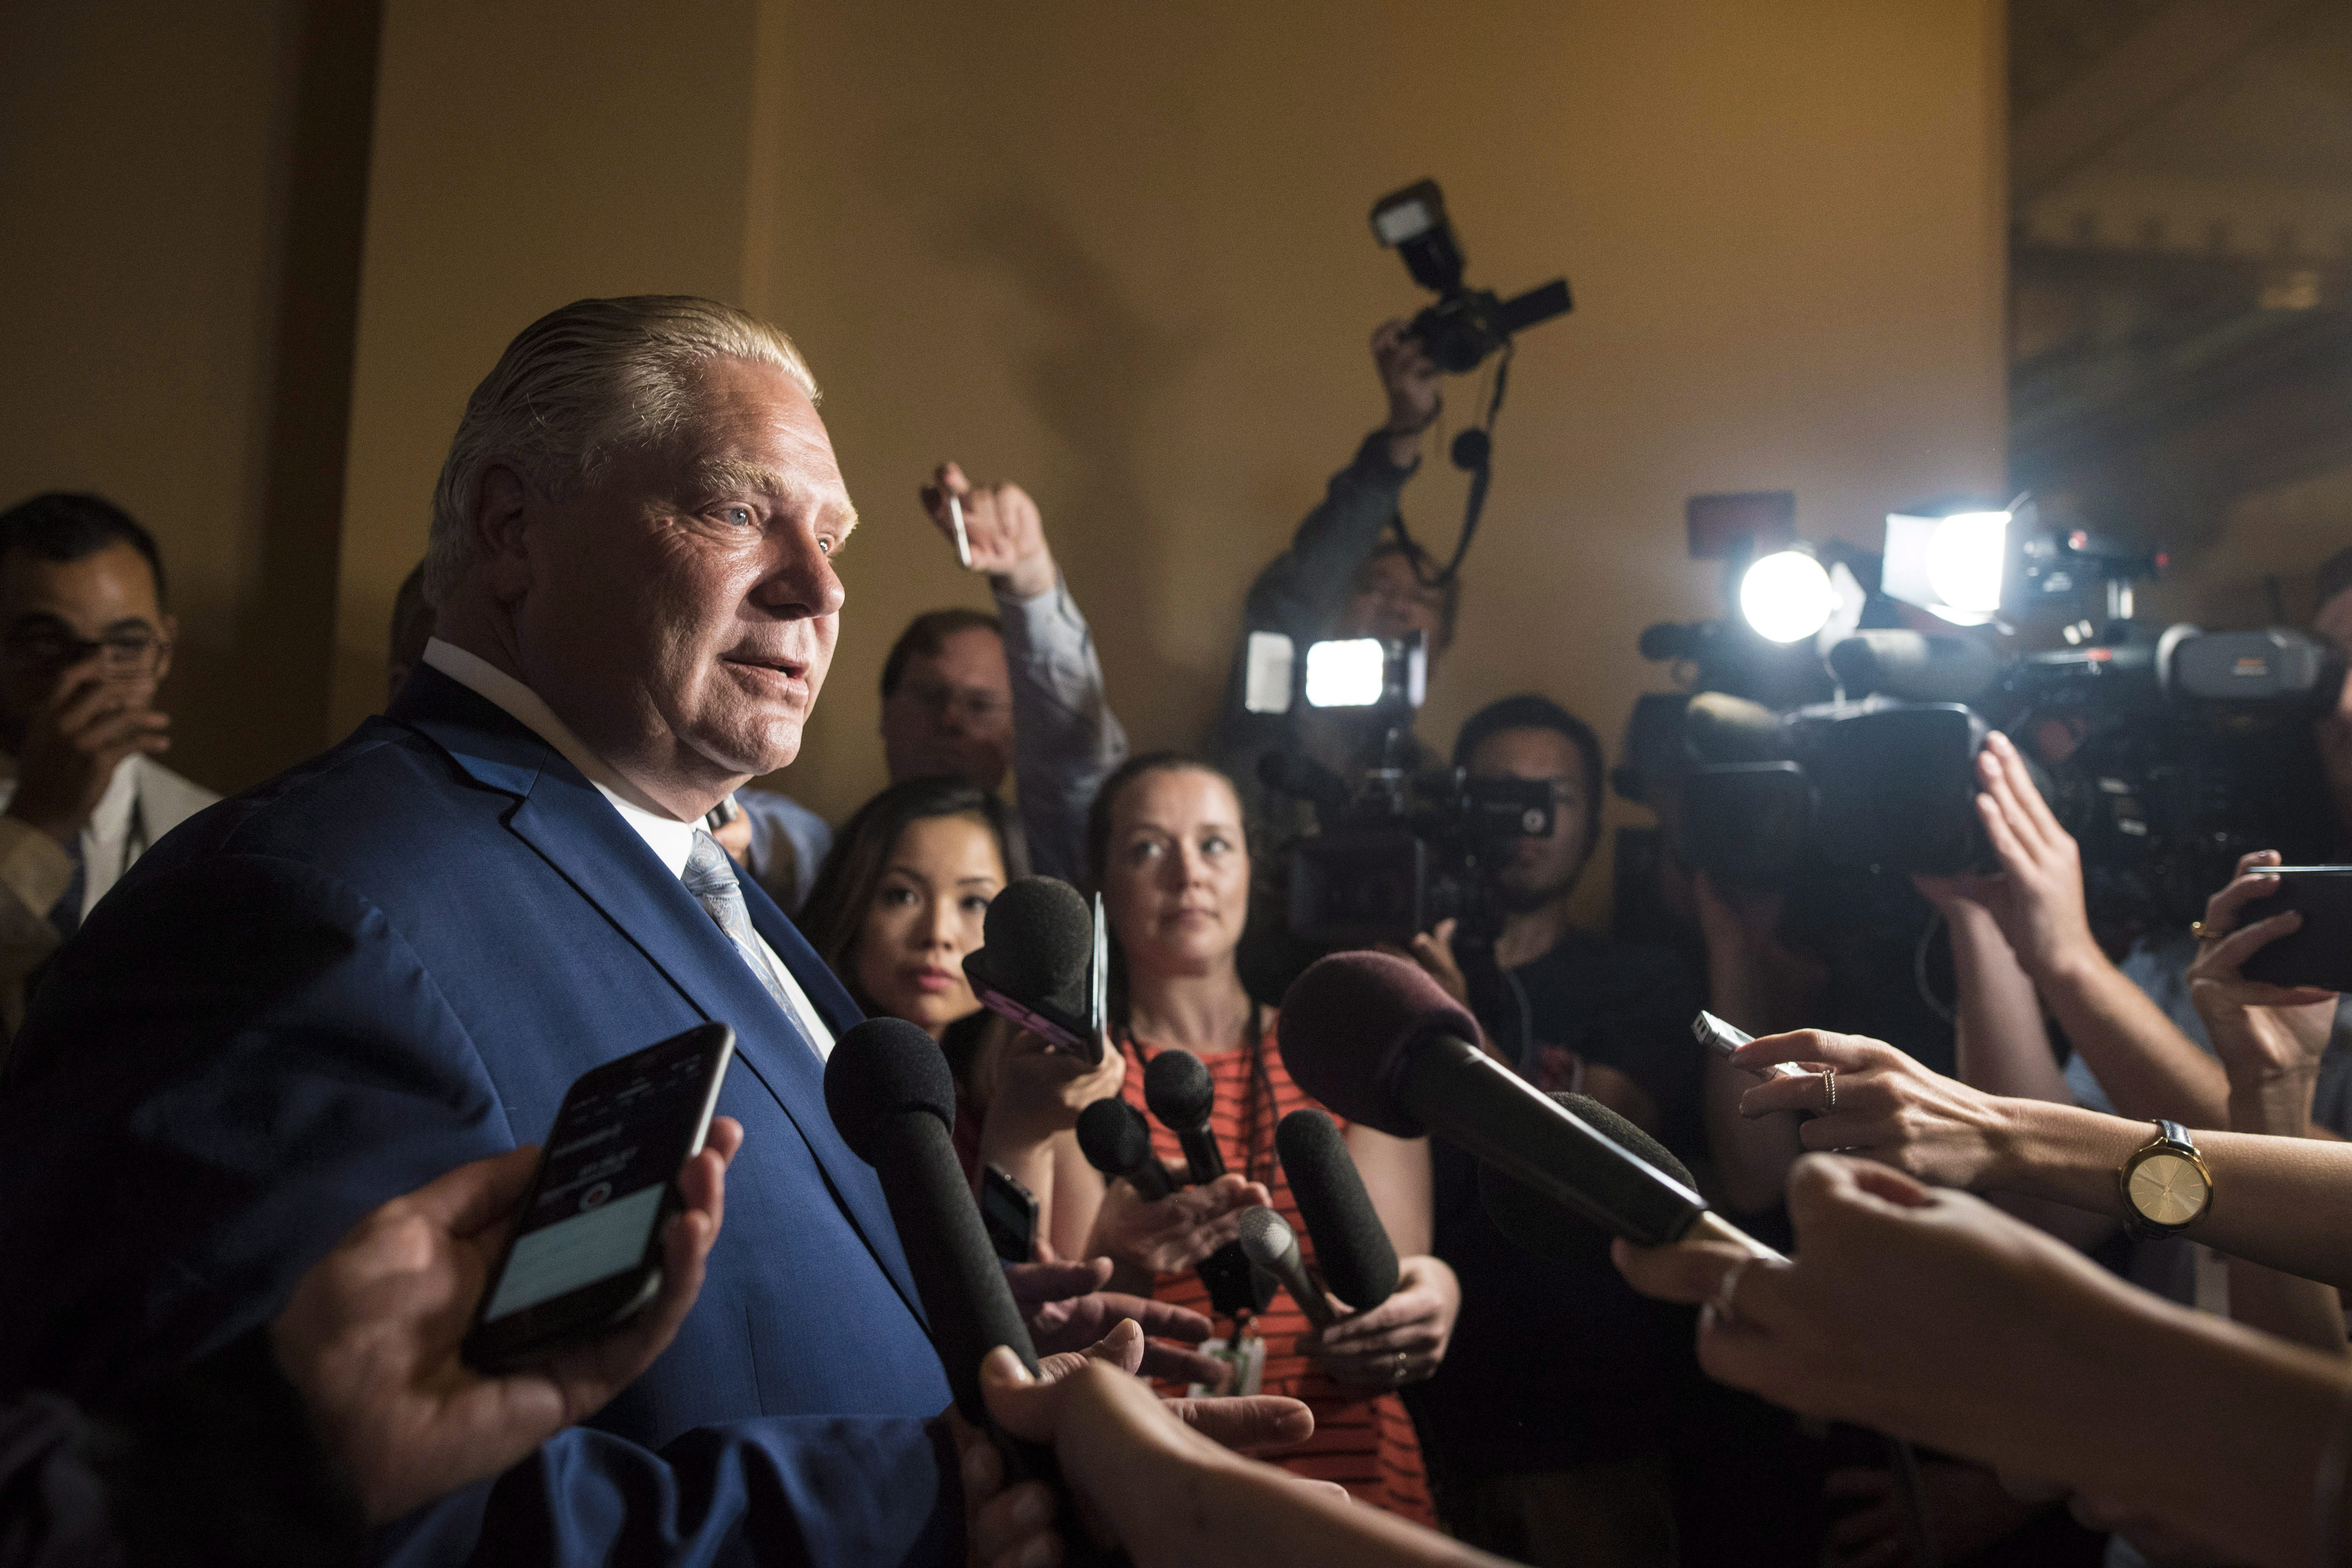 Ford wants consultations on cannabis sales